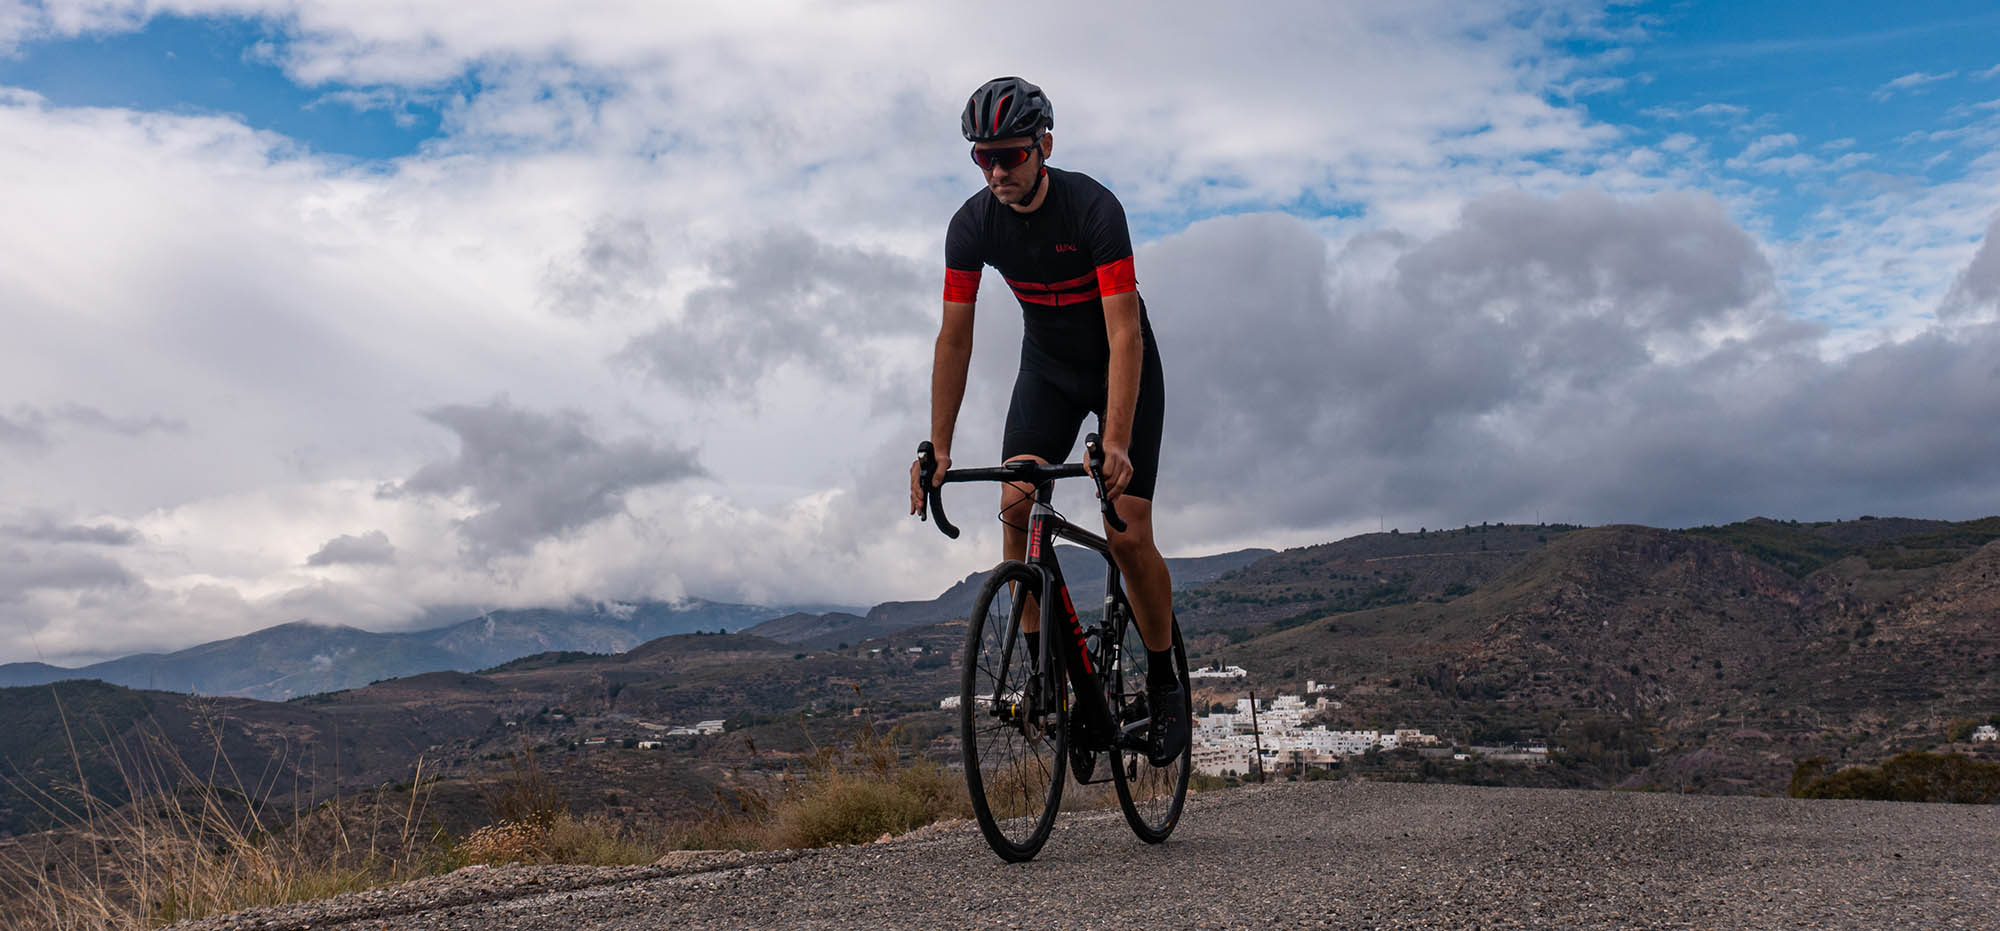 good grounds for cyclists in the mountains of Andalusia. Cyclist in a Luxa cycling jersey with red sleeves